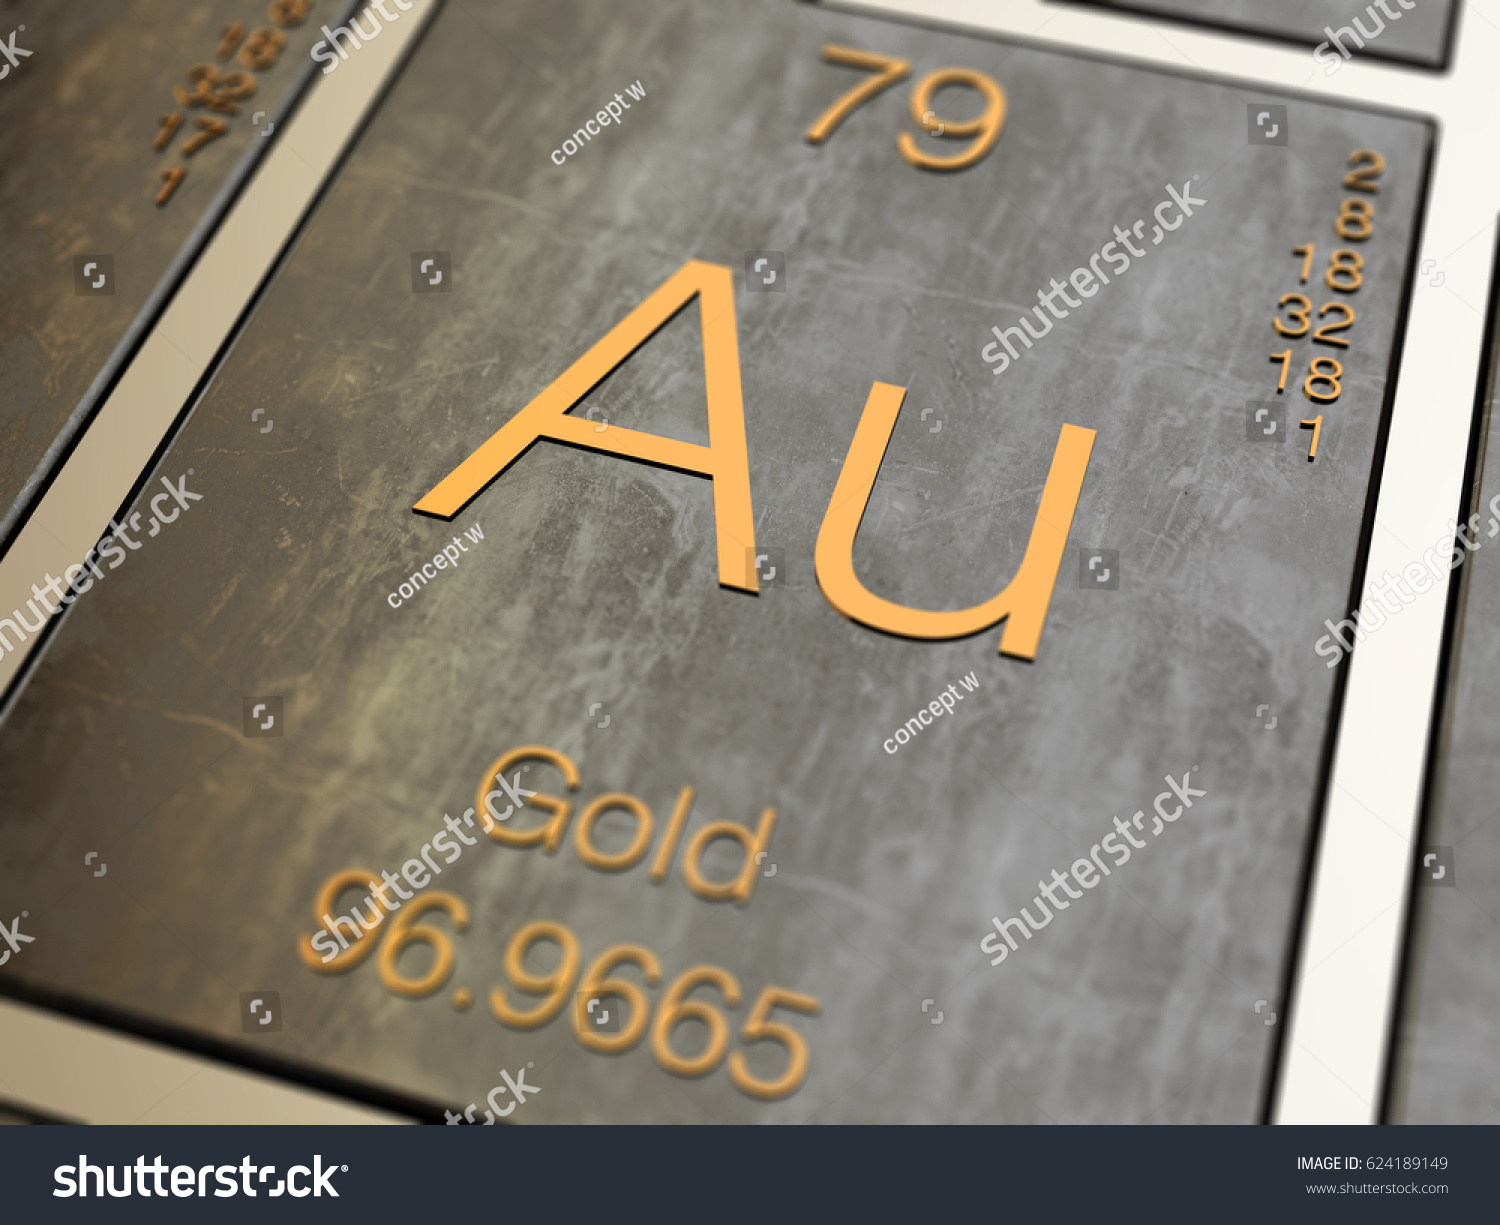 Gold element symbol periodic table 3d stock illustration 624189149 gold element symbol from periodic table 3d rendered with depth of field urtaz Choice Image